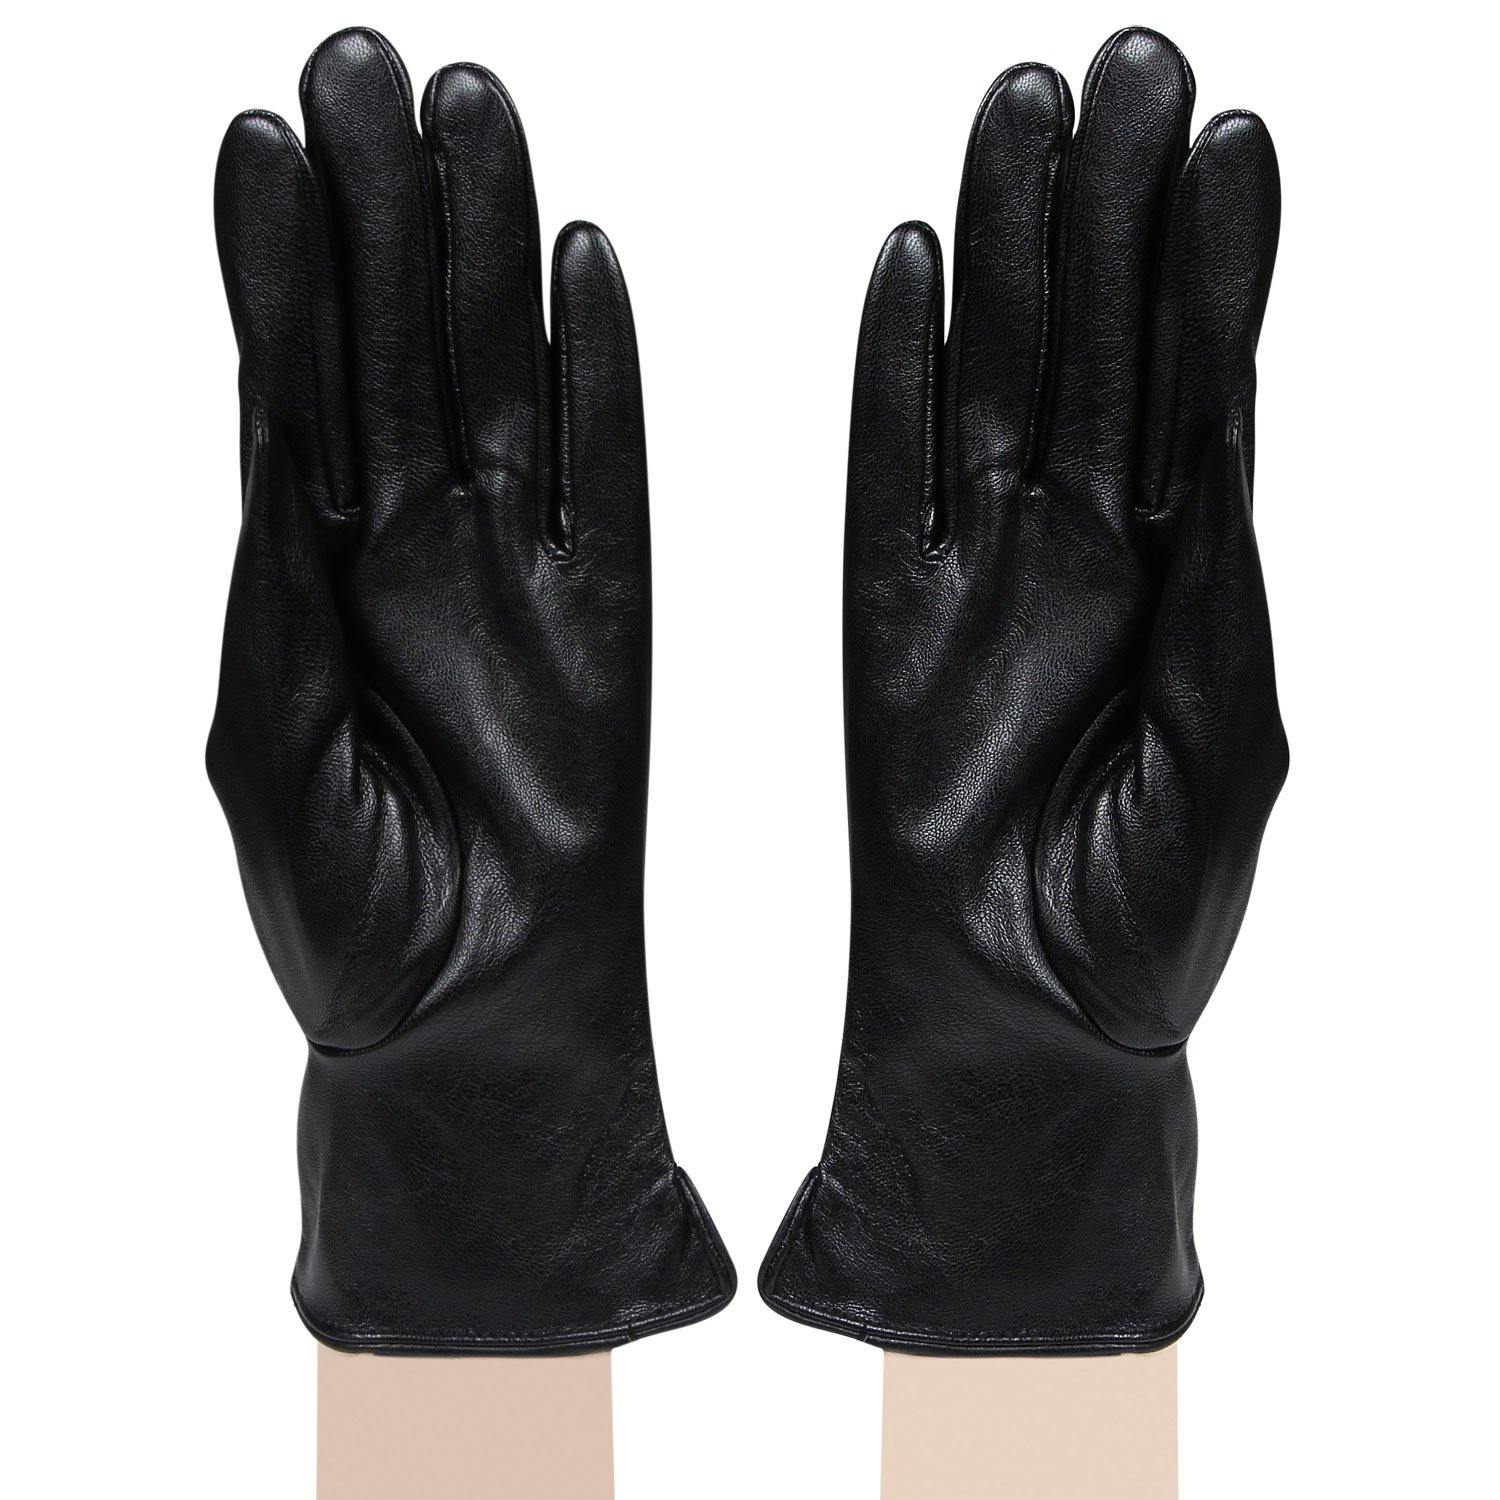 Womens designer Gloves - Black